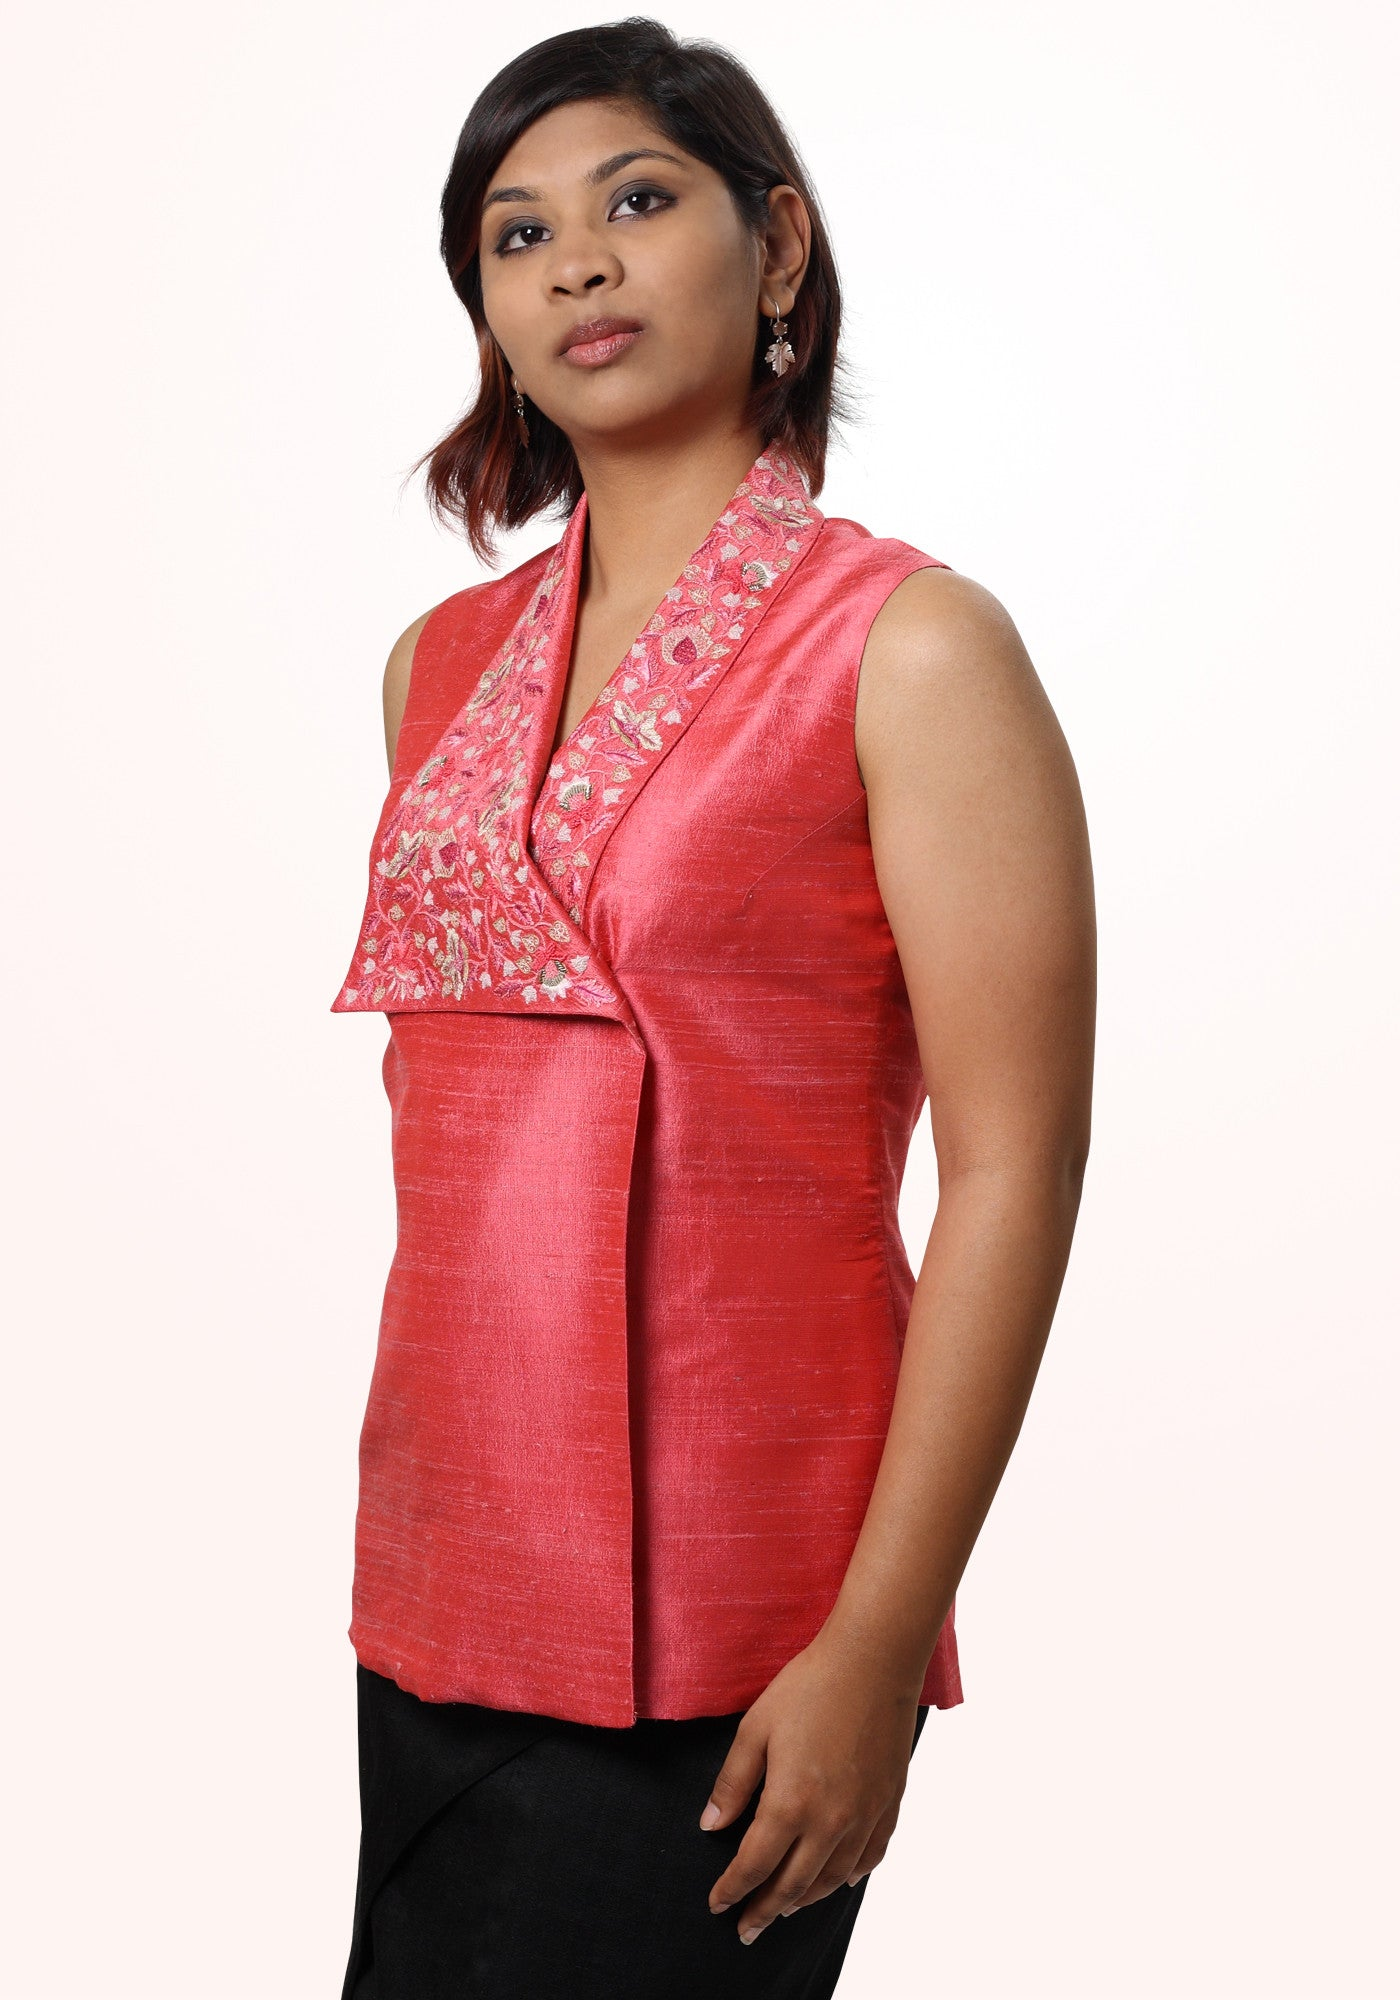 Asymmetric hand embroidered top - MINC ecofashion